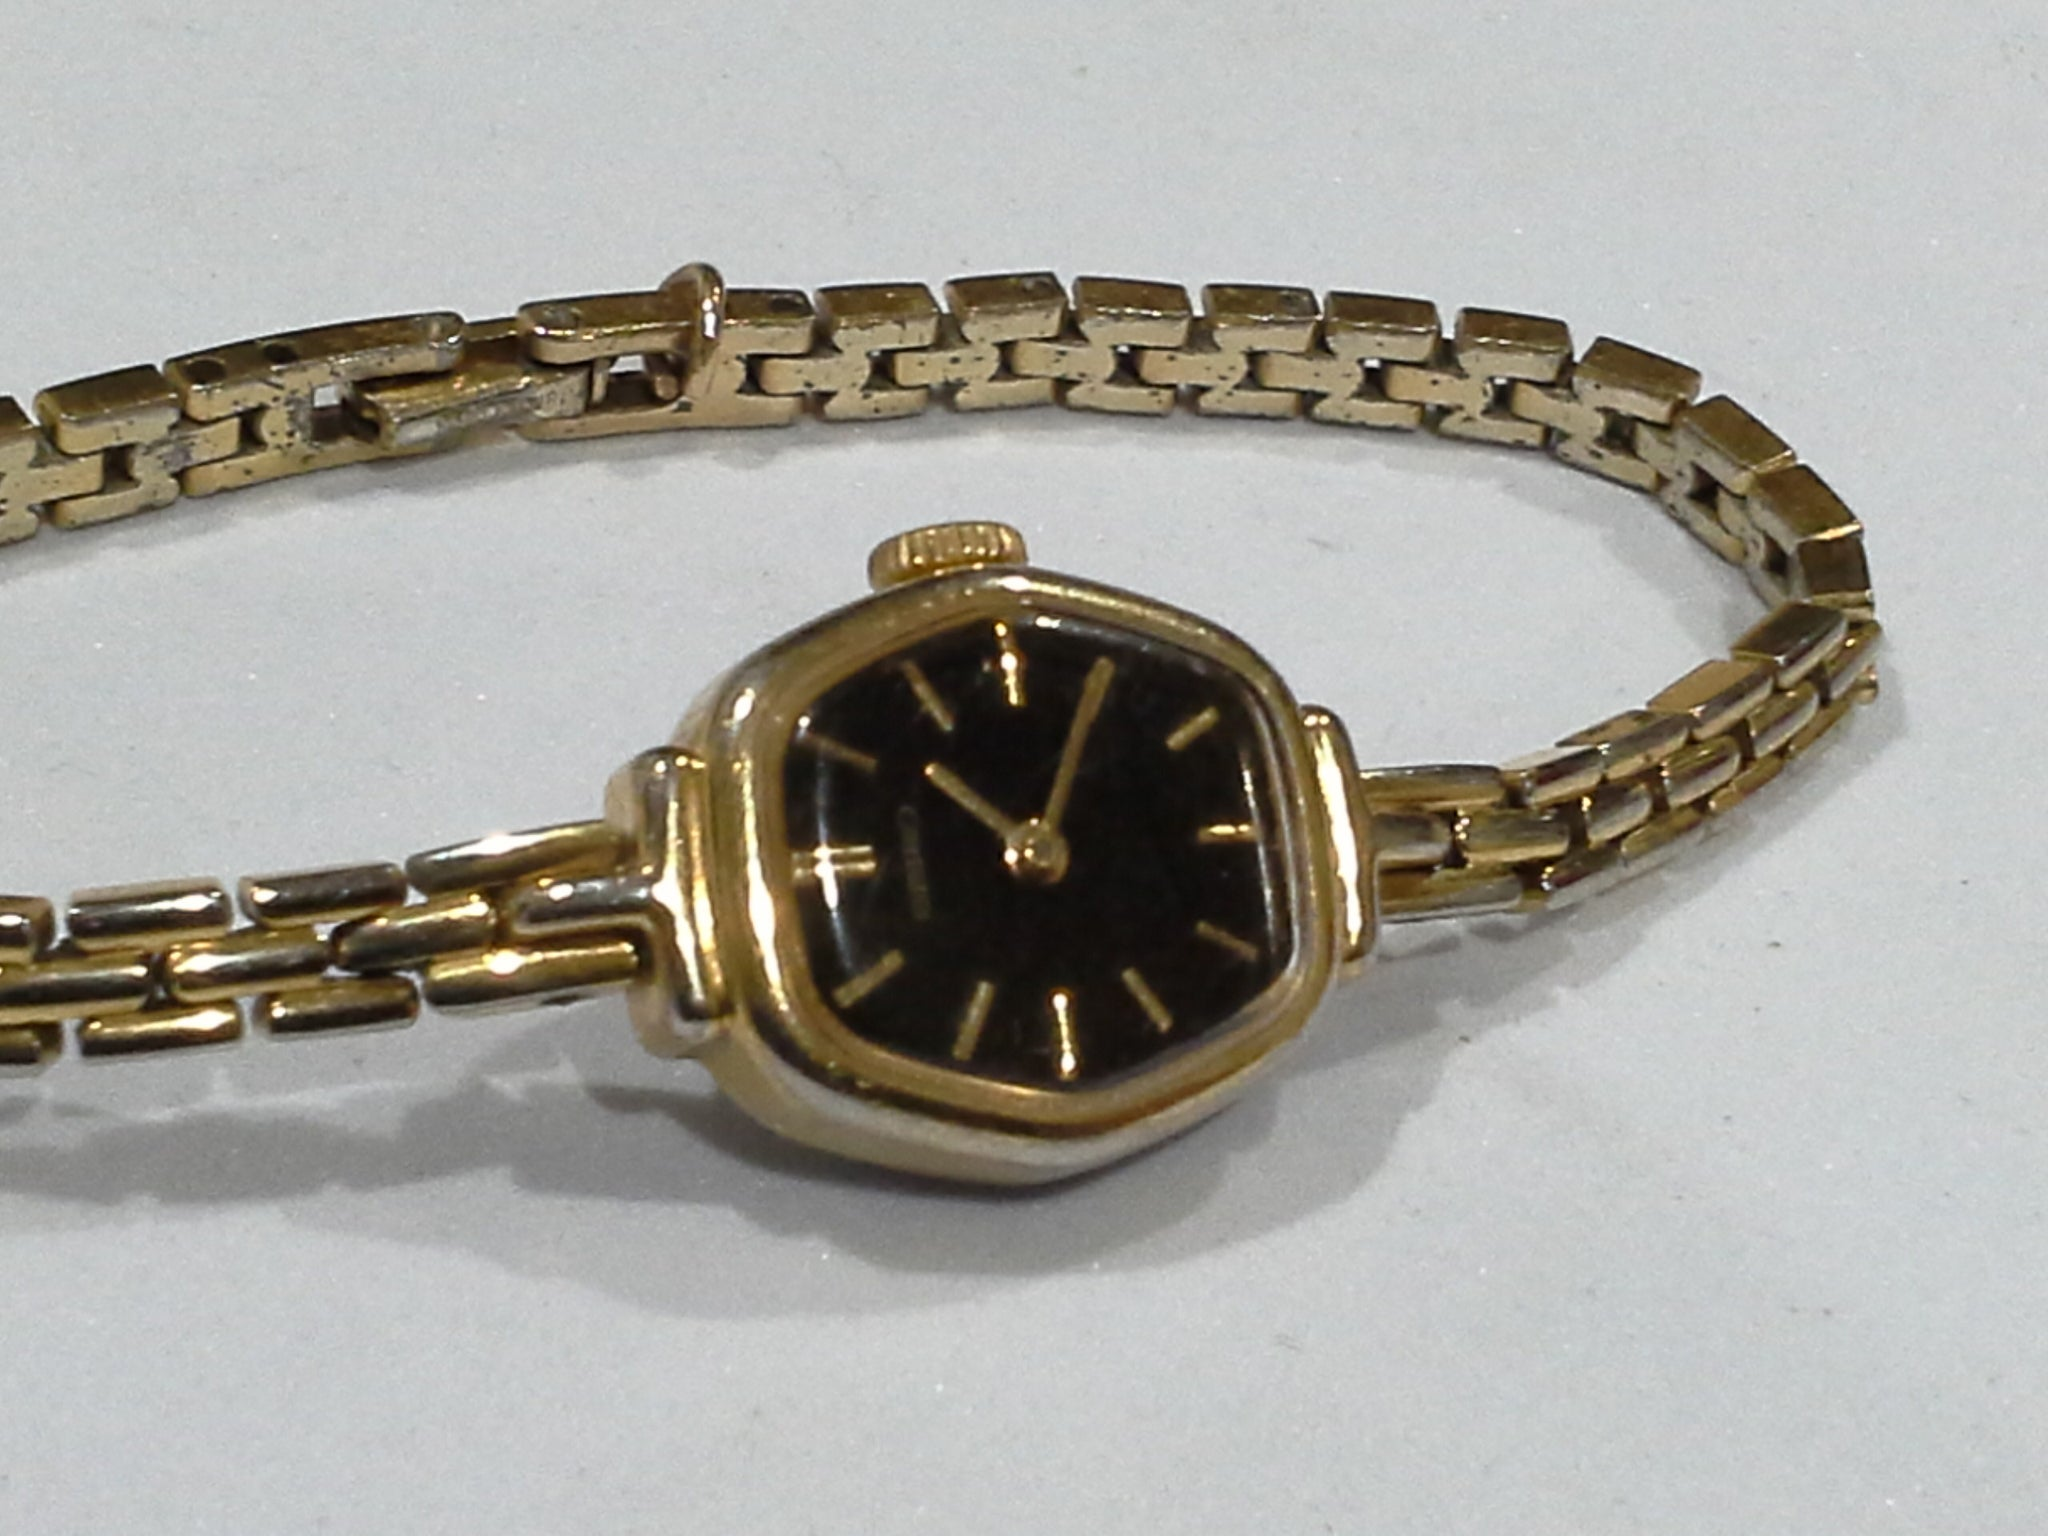 VINTAGE LADIES SEIKO WRISTWATCH SGP  GOLD PLATED w/ BLACK WATCH FACE